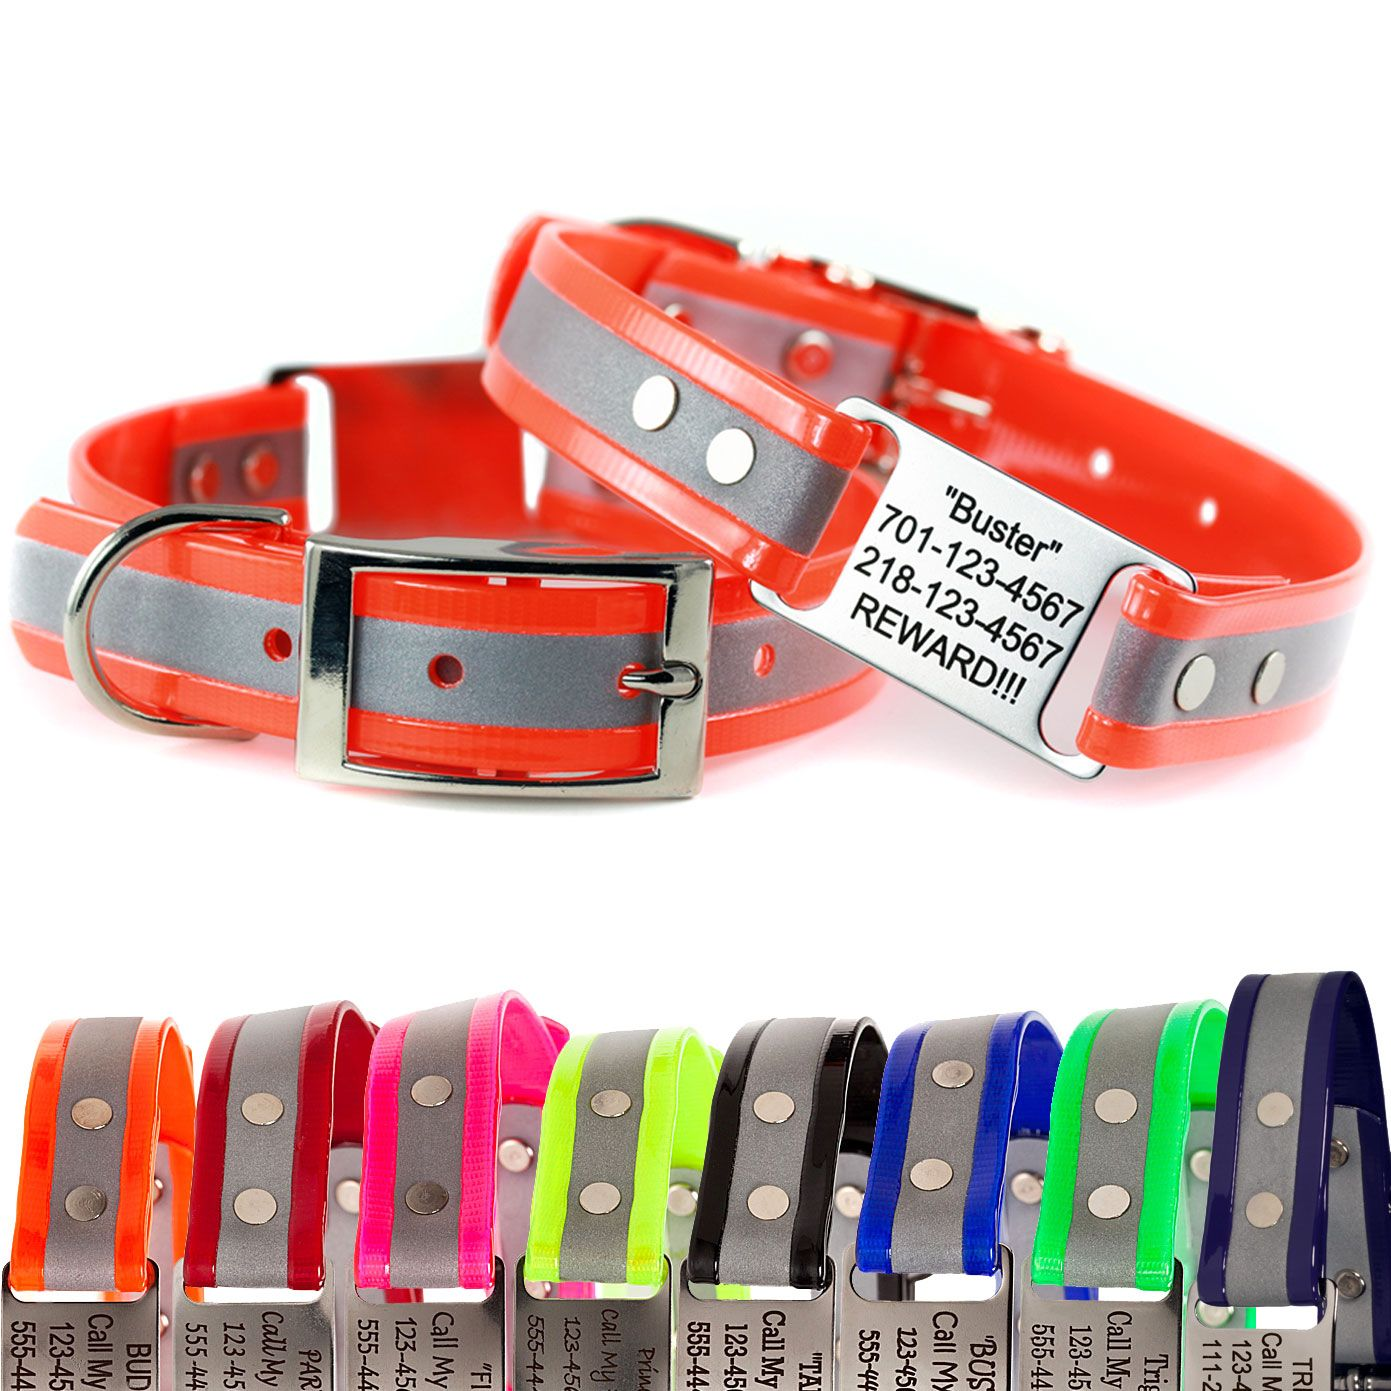 This reflective dog collar will let you and your pooch enjoy night-time walks safely. Order these customizable, reflective collars for dogs from dogIDs.